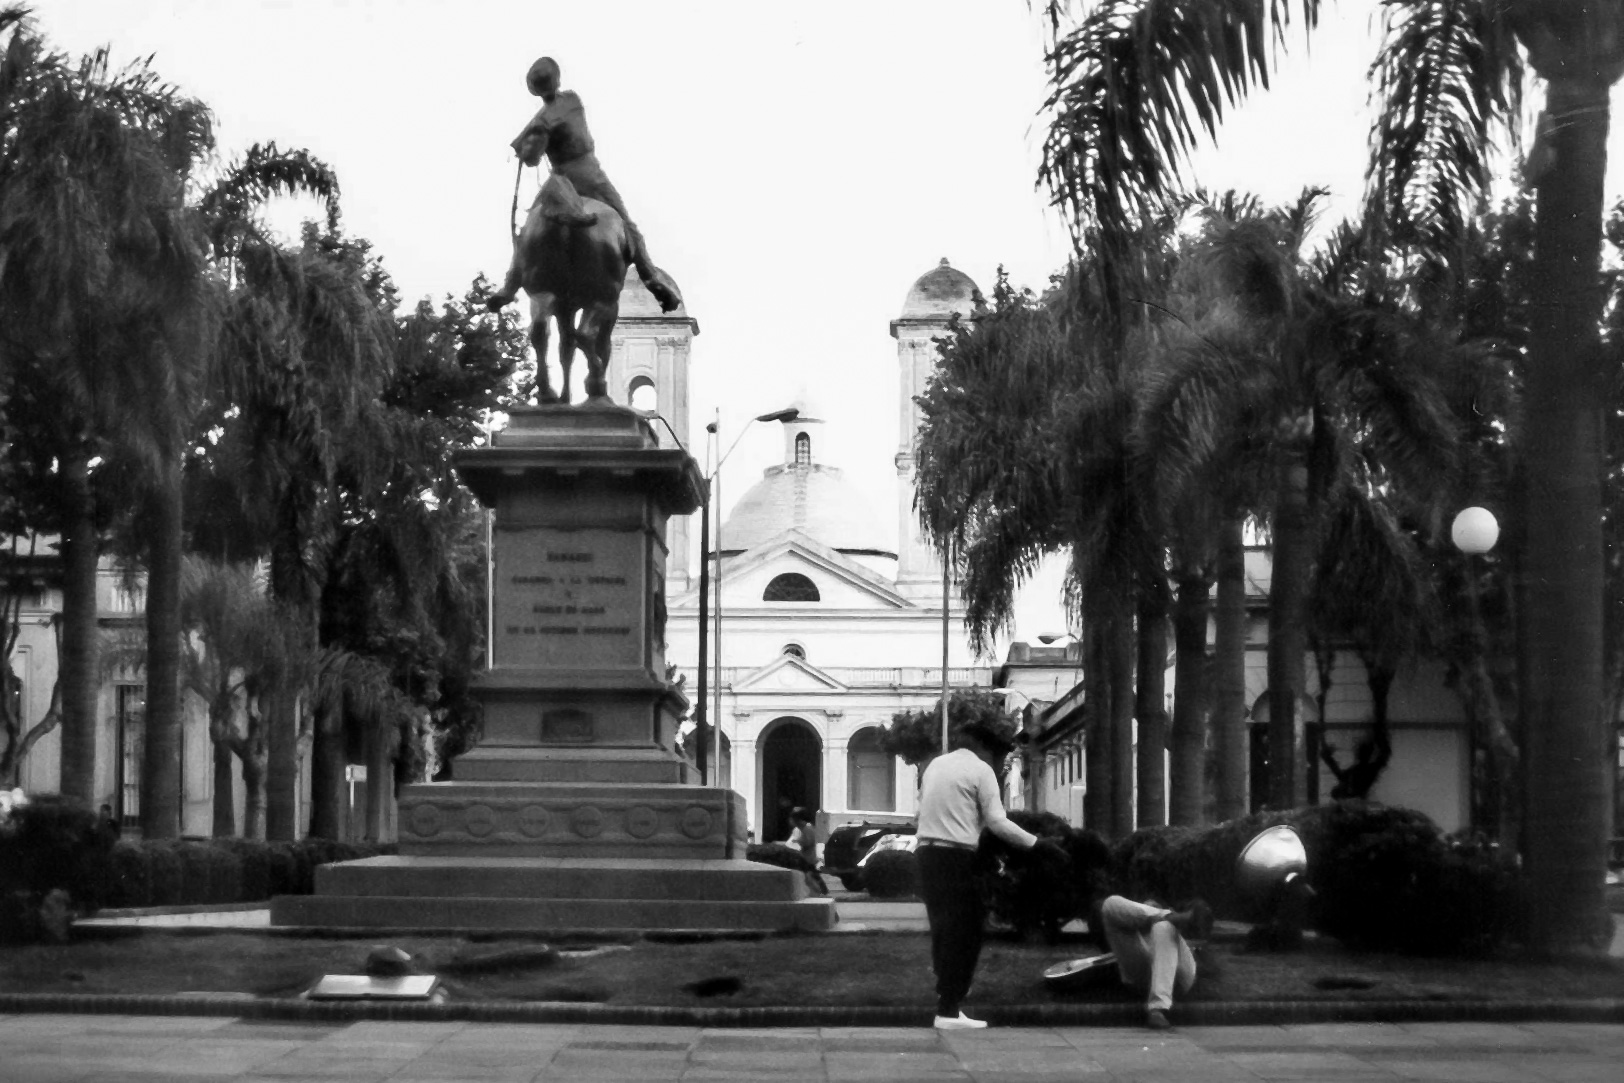 The Classic view of the town square in Minas, Uruguay.  This photo was taken with my Canon Rebel G shot on Tmax.  Man, that was a life time ago, but you know what? The feelings come rushing back just seeing this photo. What an amazing time I had in a butifle place.